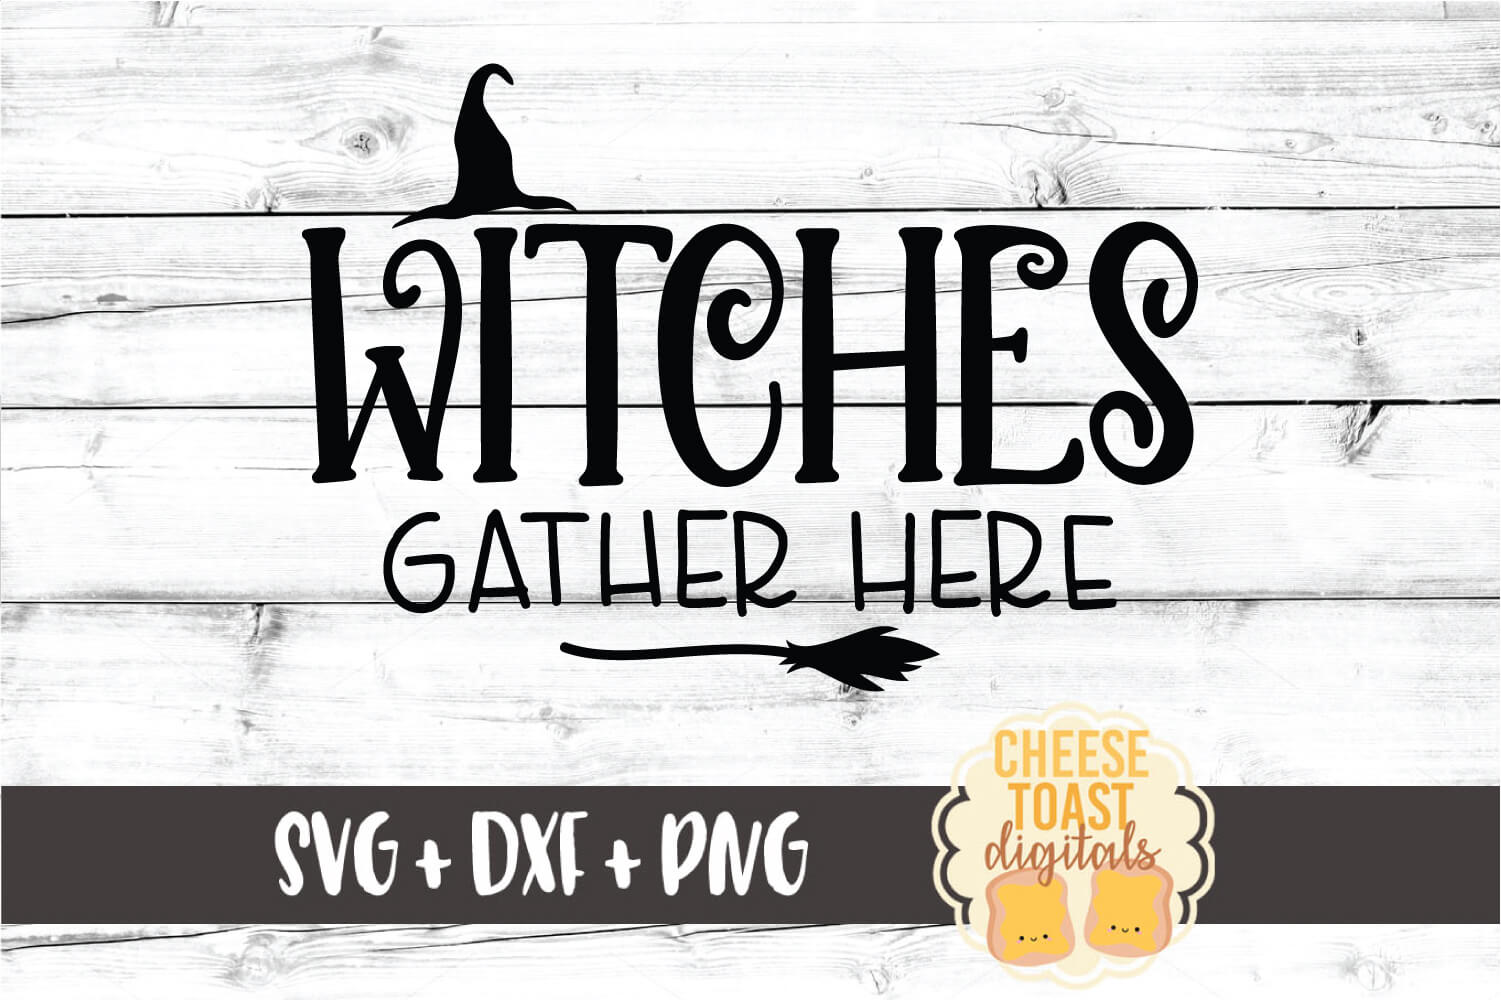 Witches Gather Here - Halloween Sign SVG PNG DXF Cut Files example image 2